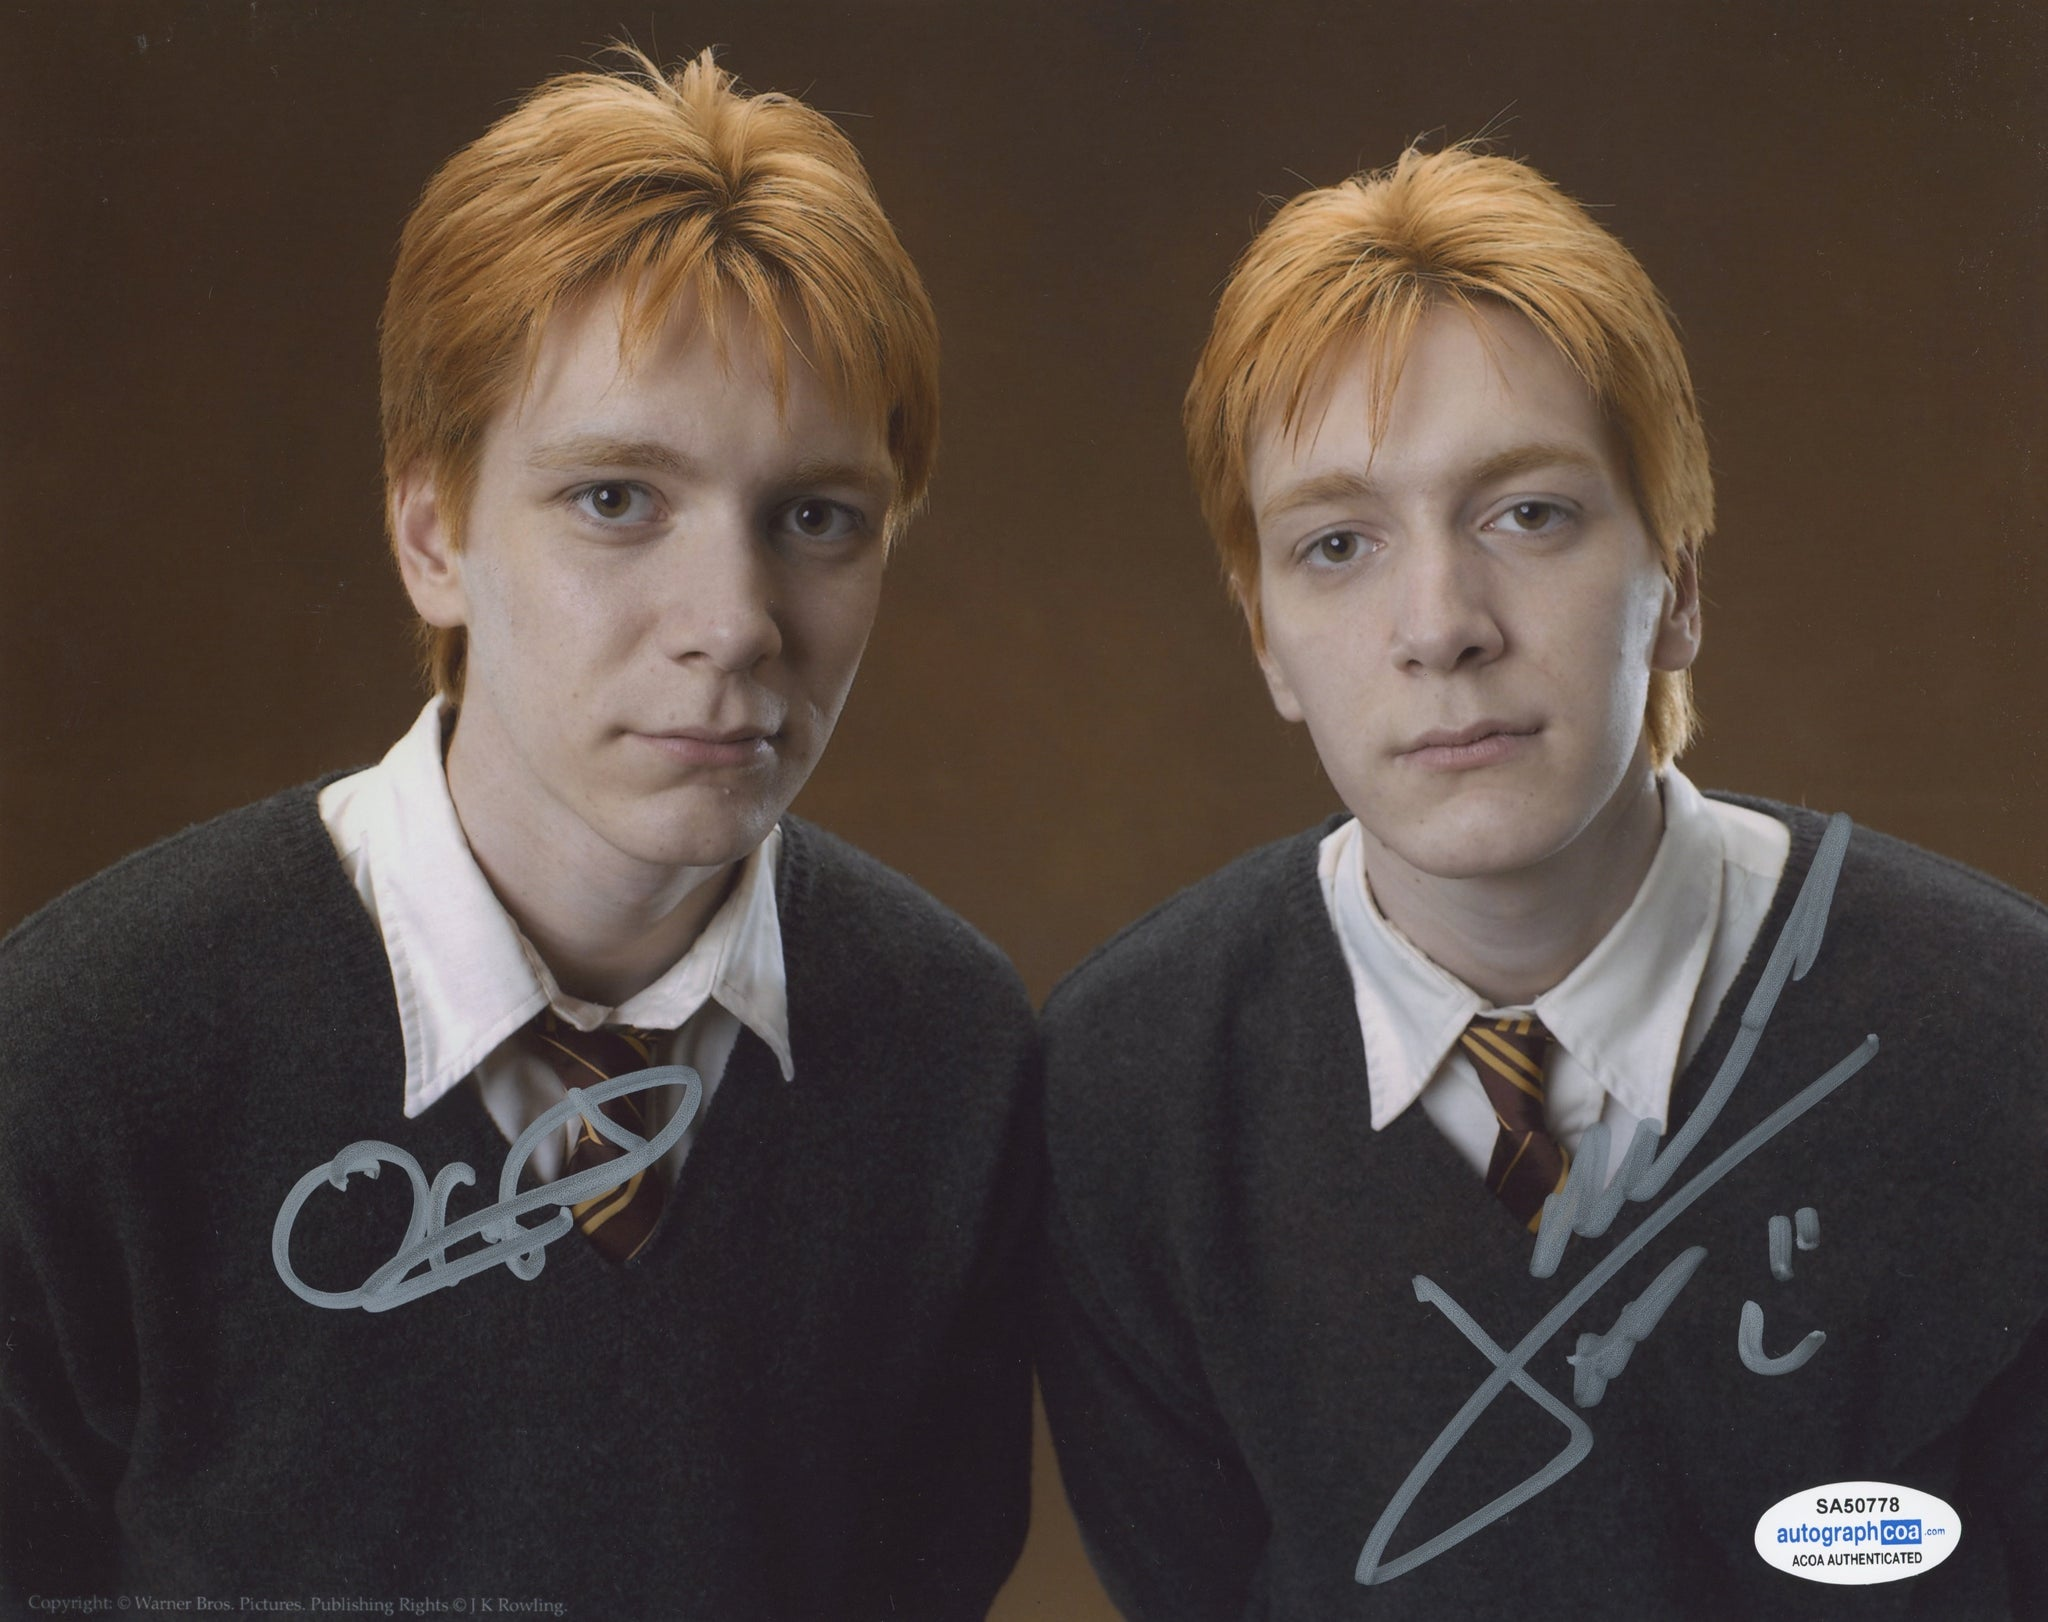 Oliver and James Phelps Harry Potter Signed Autograph 8x10 Photo ACOA